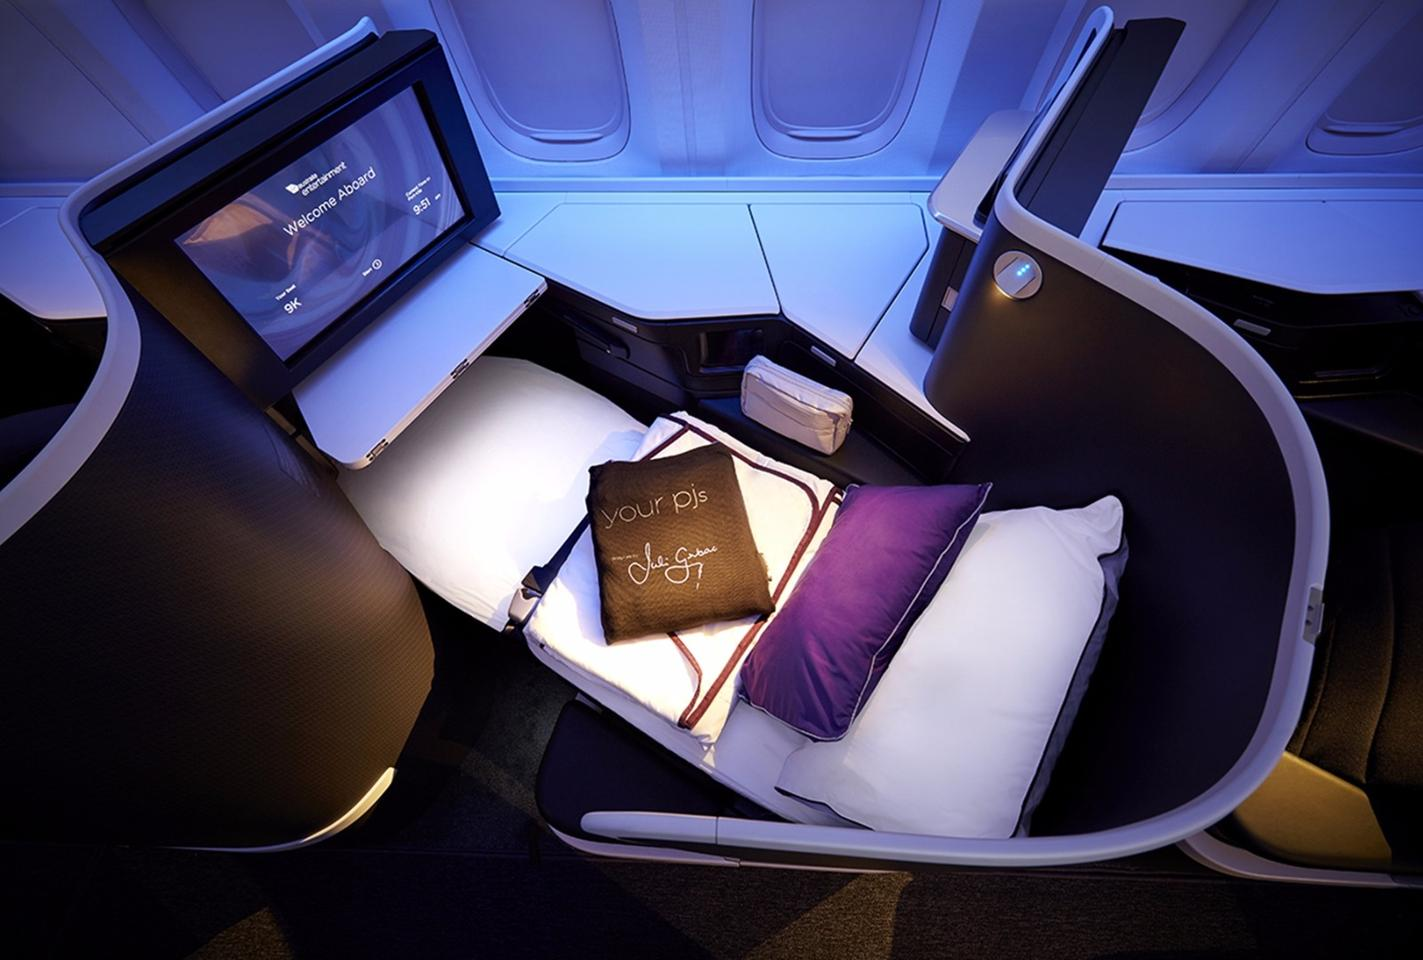 The new cabin layout is being installed on Virgin Australia's fleet of Boeing 777-300ER aircraft